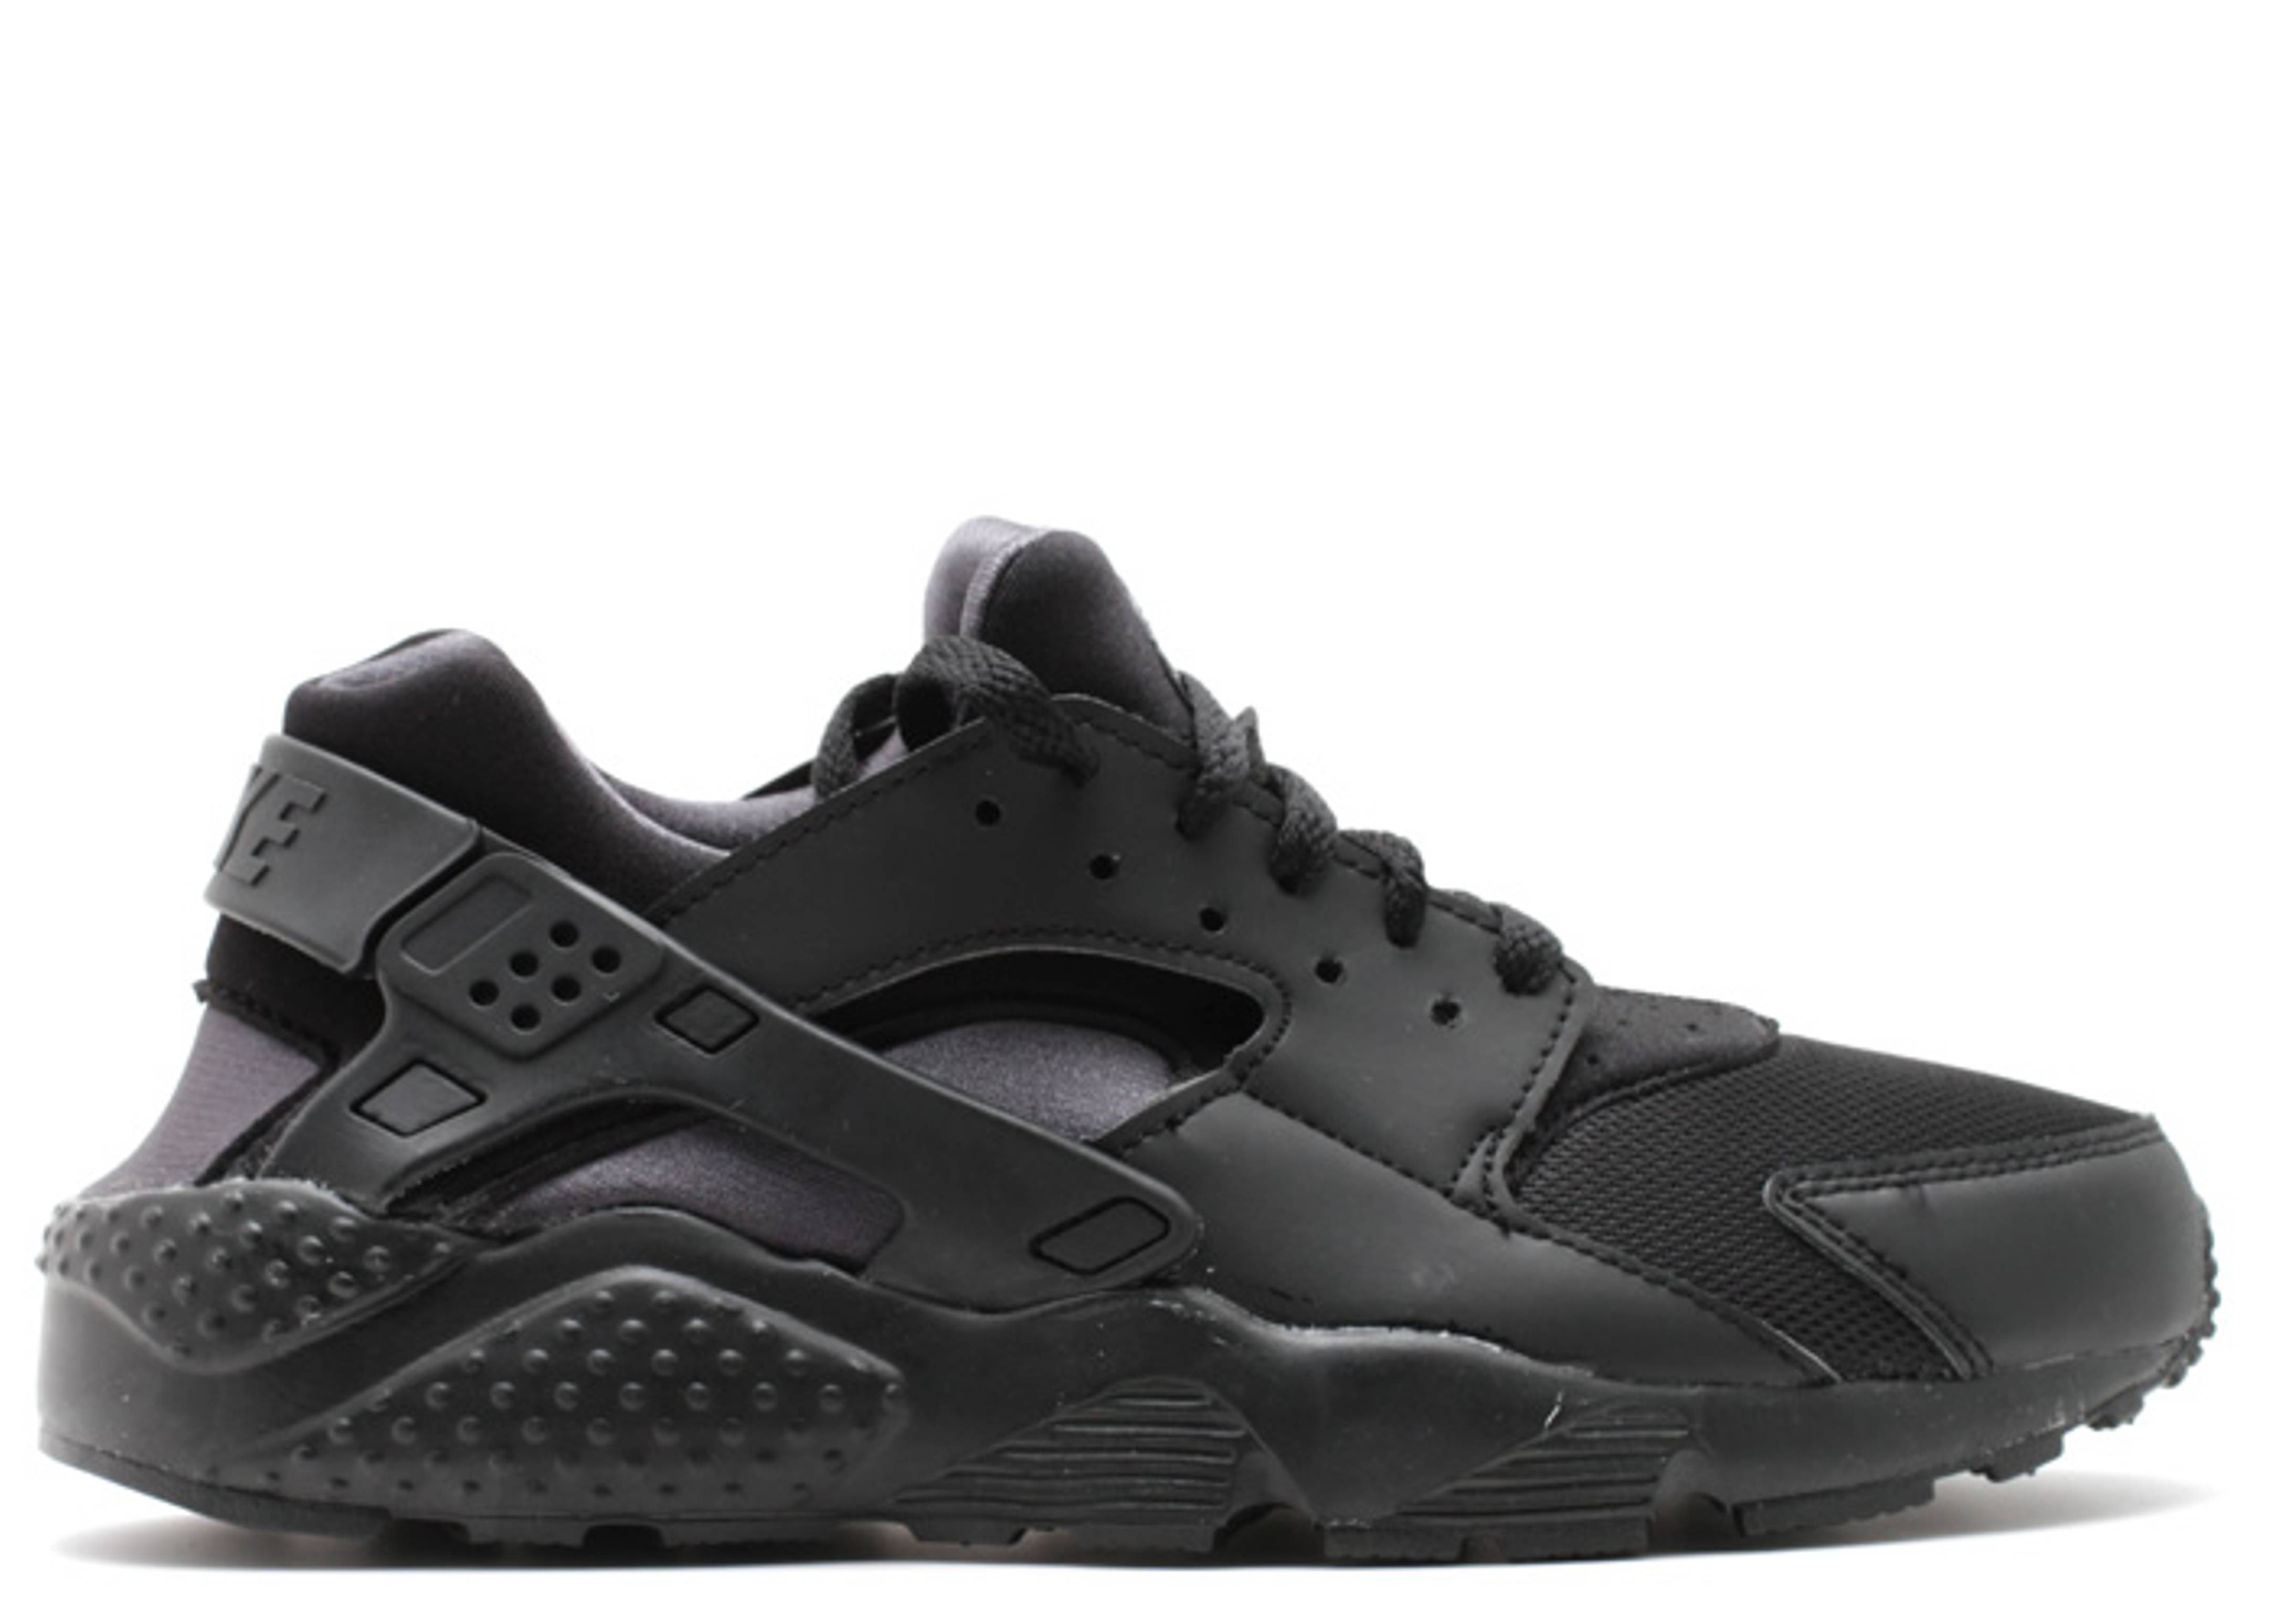 New Huaraches Shoes